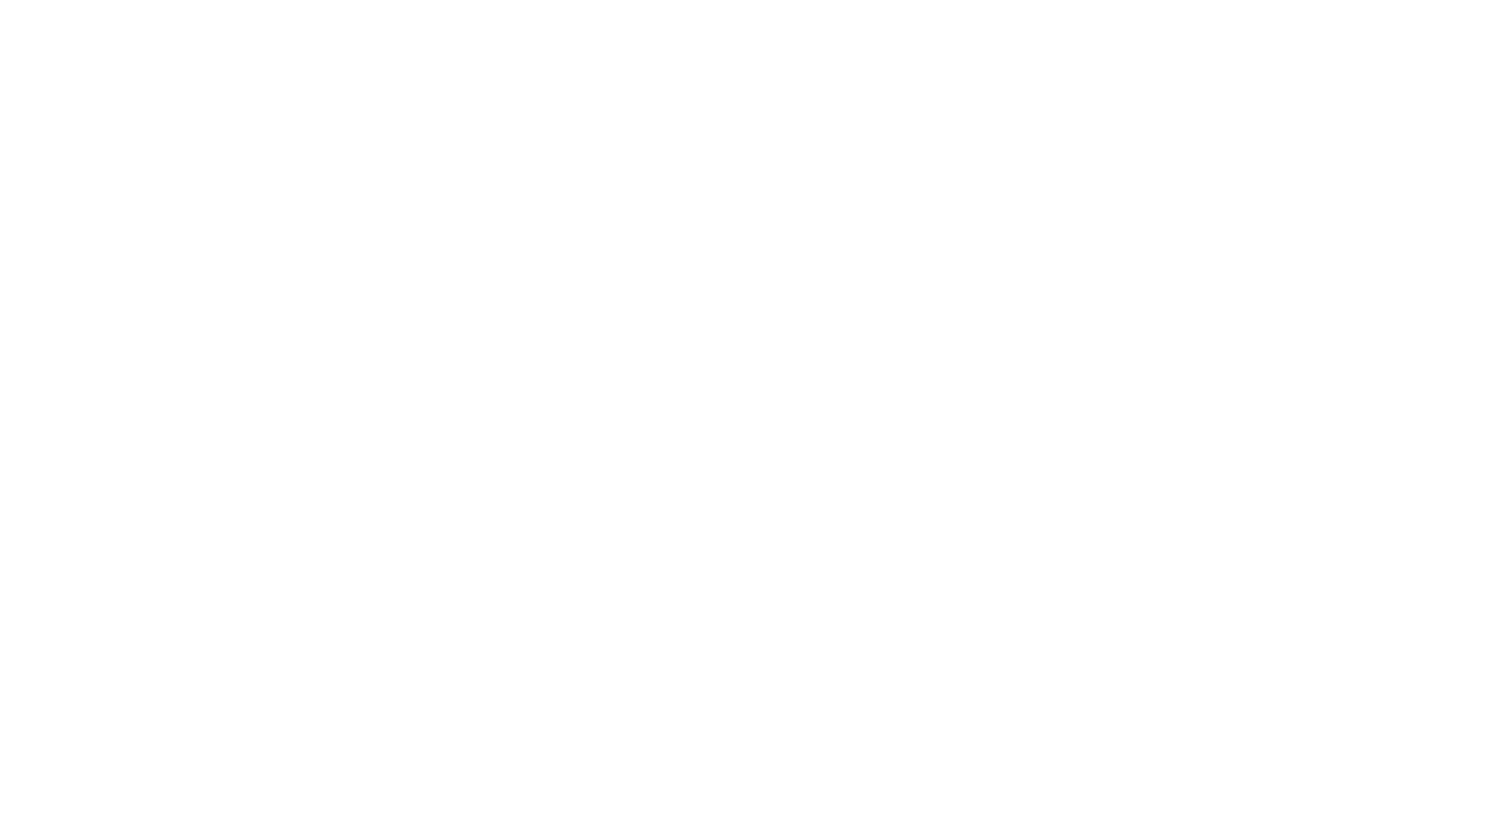 ALL IN WHITE WEDDING